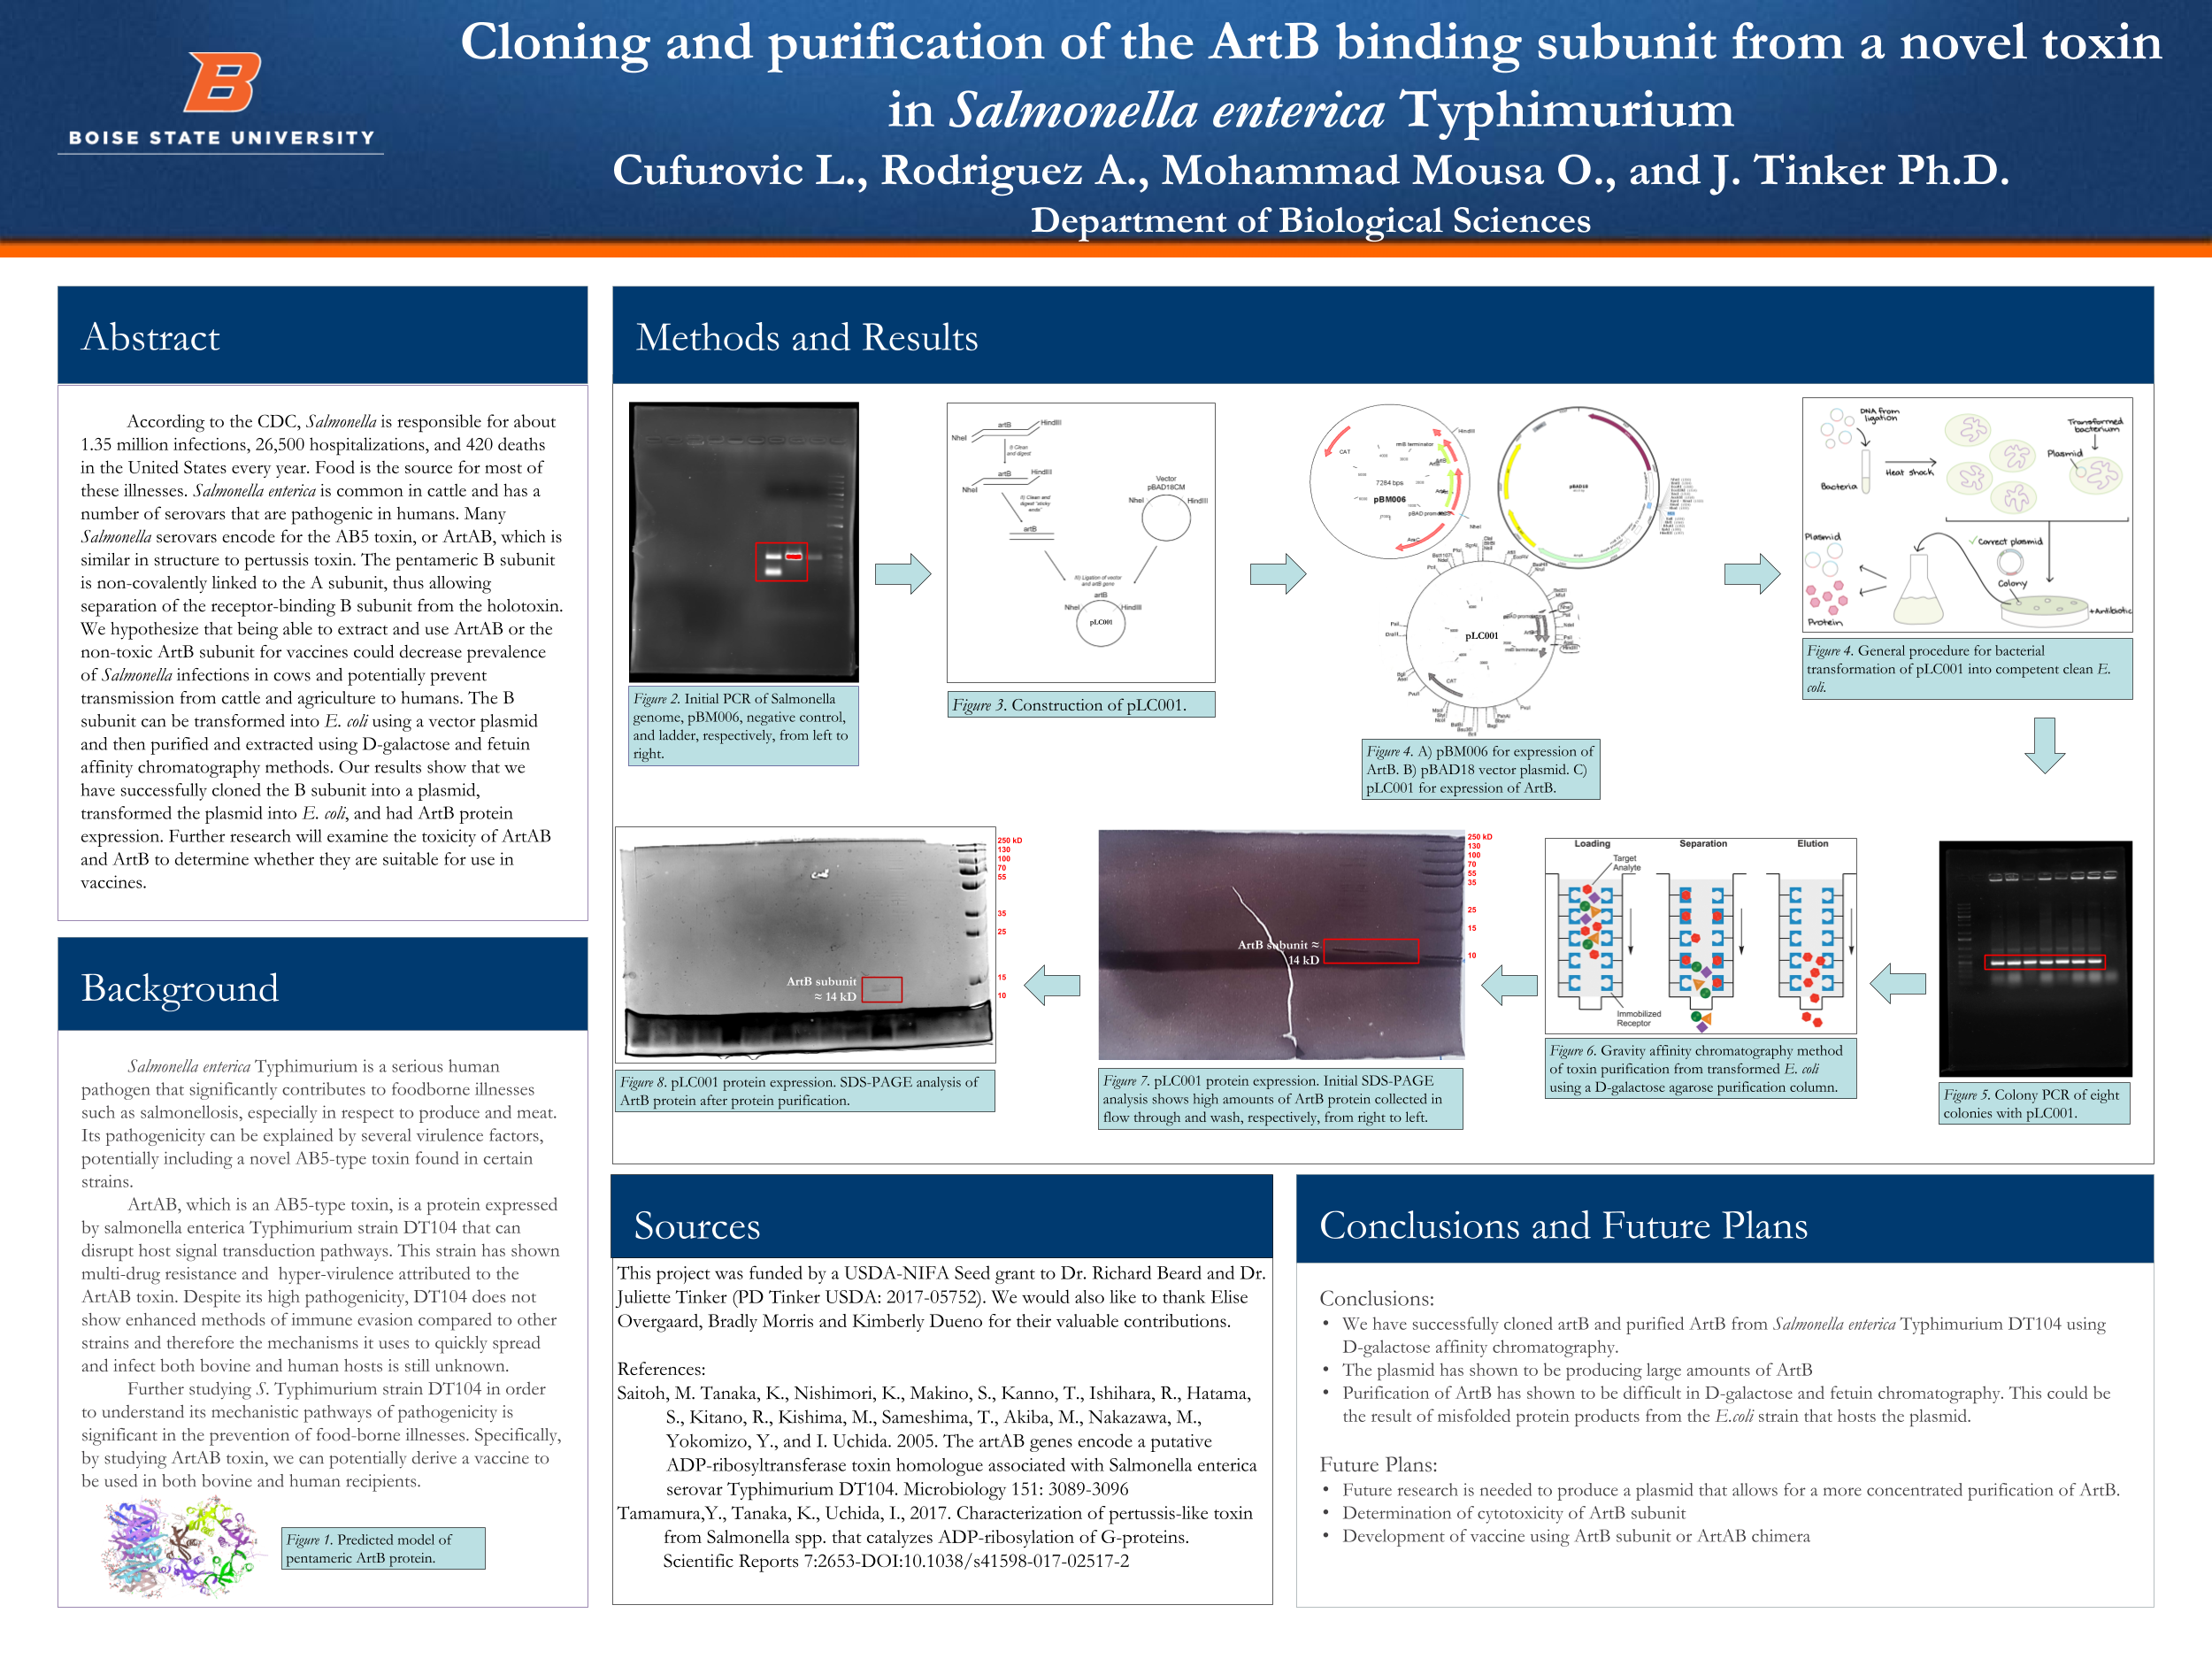 Curfurovic Final Poster - view poster content on post page